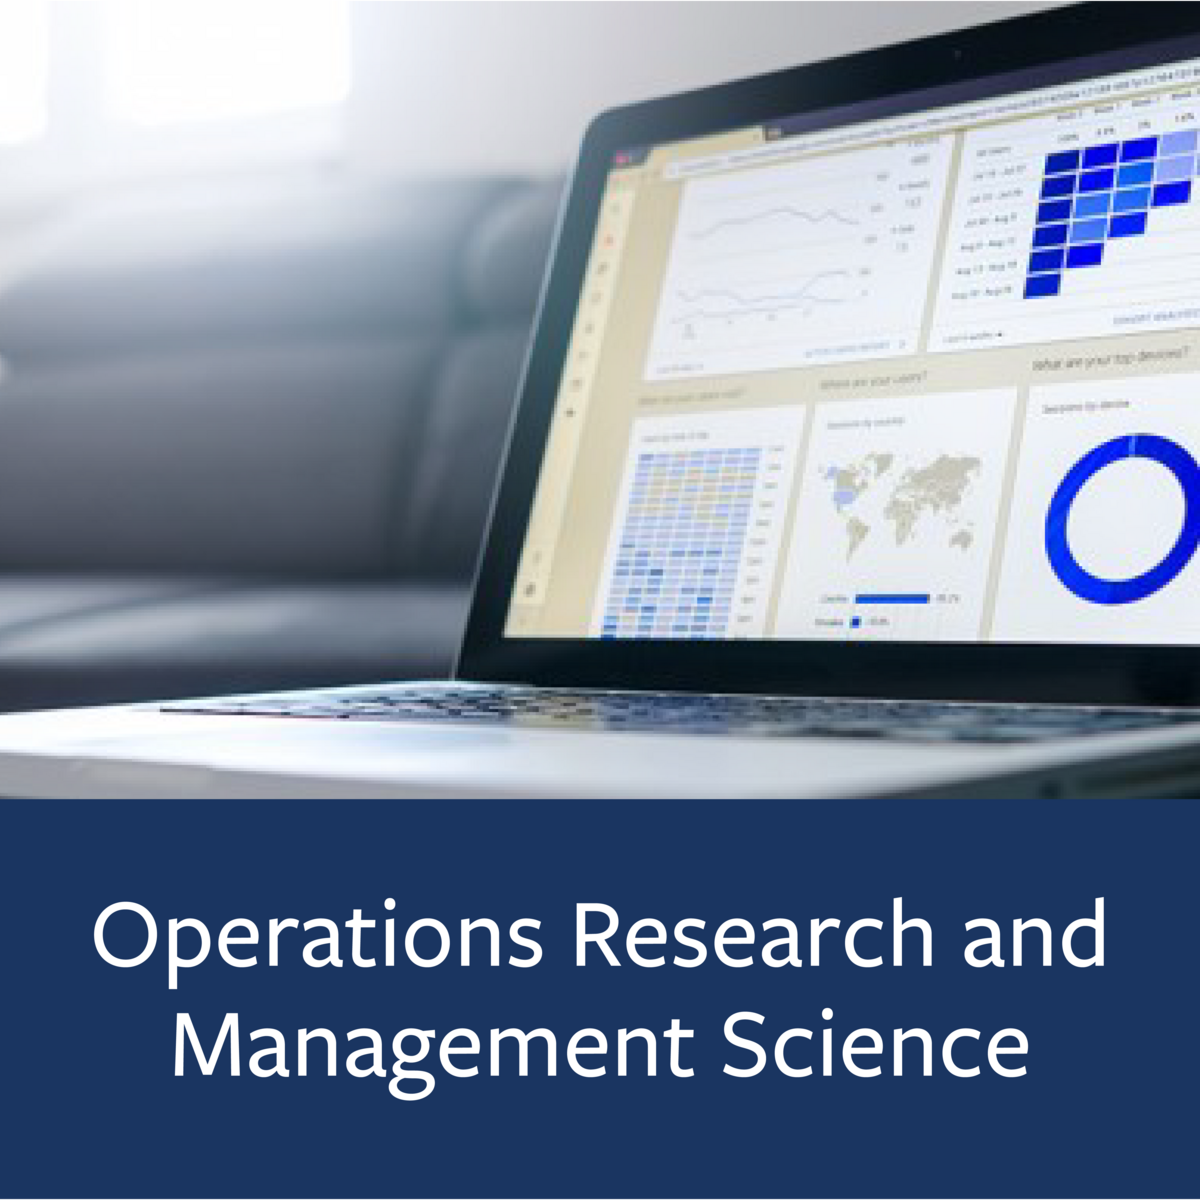 Operations Research and Management Science Major Map